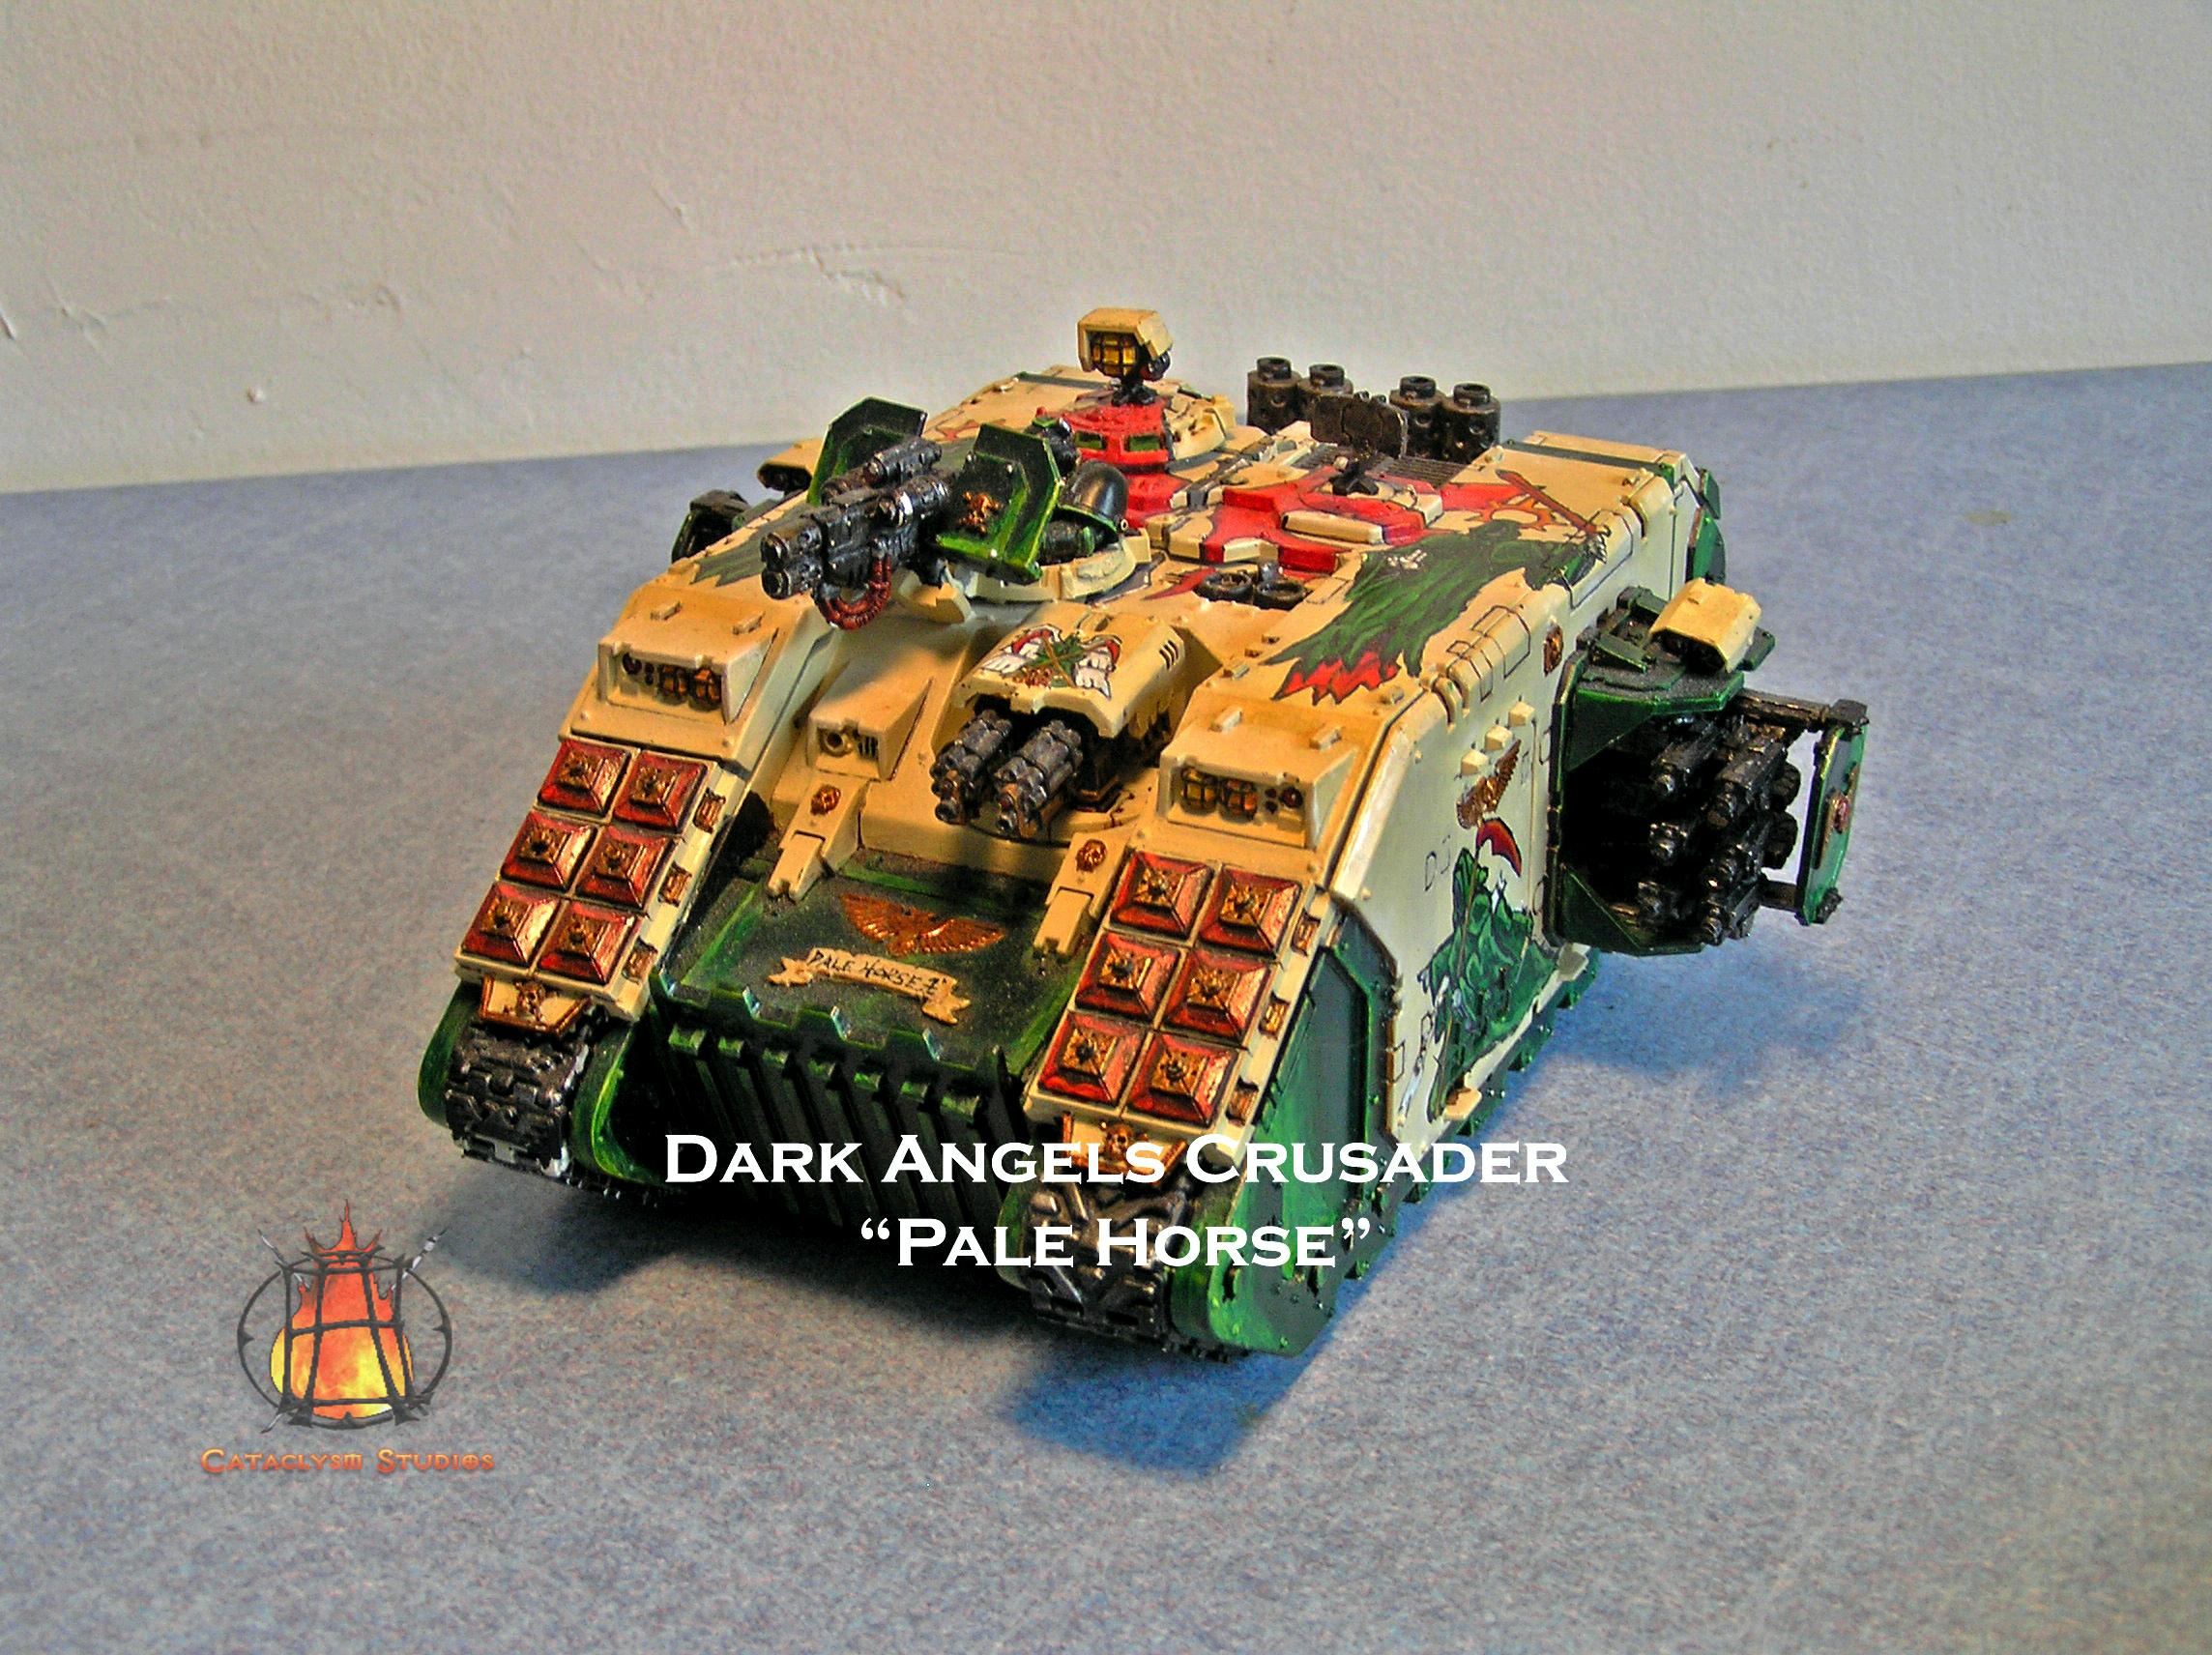 28mm, Amored Personnel Carrier, Cataclysm Studios, Dark Angels, Games Workshop, Heavy Support, Space Marines, Tank, Transport, Warhammer 40,000